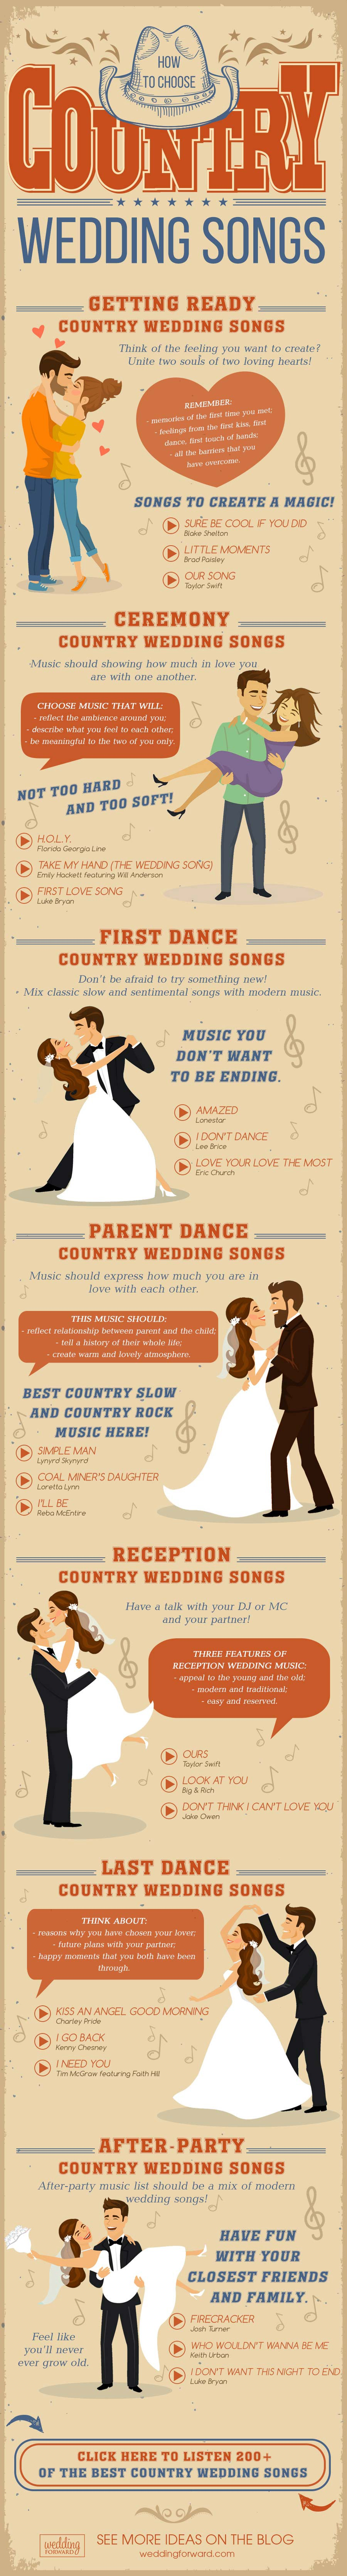 Old Country Love Songs For Wedding